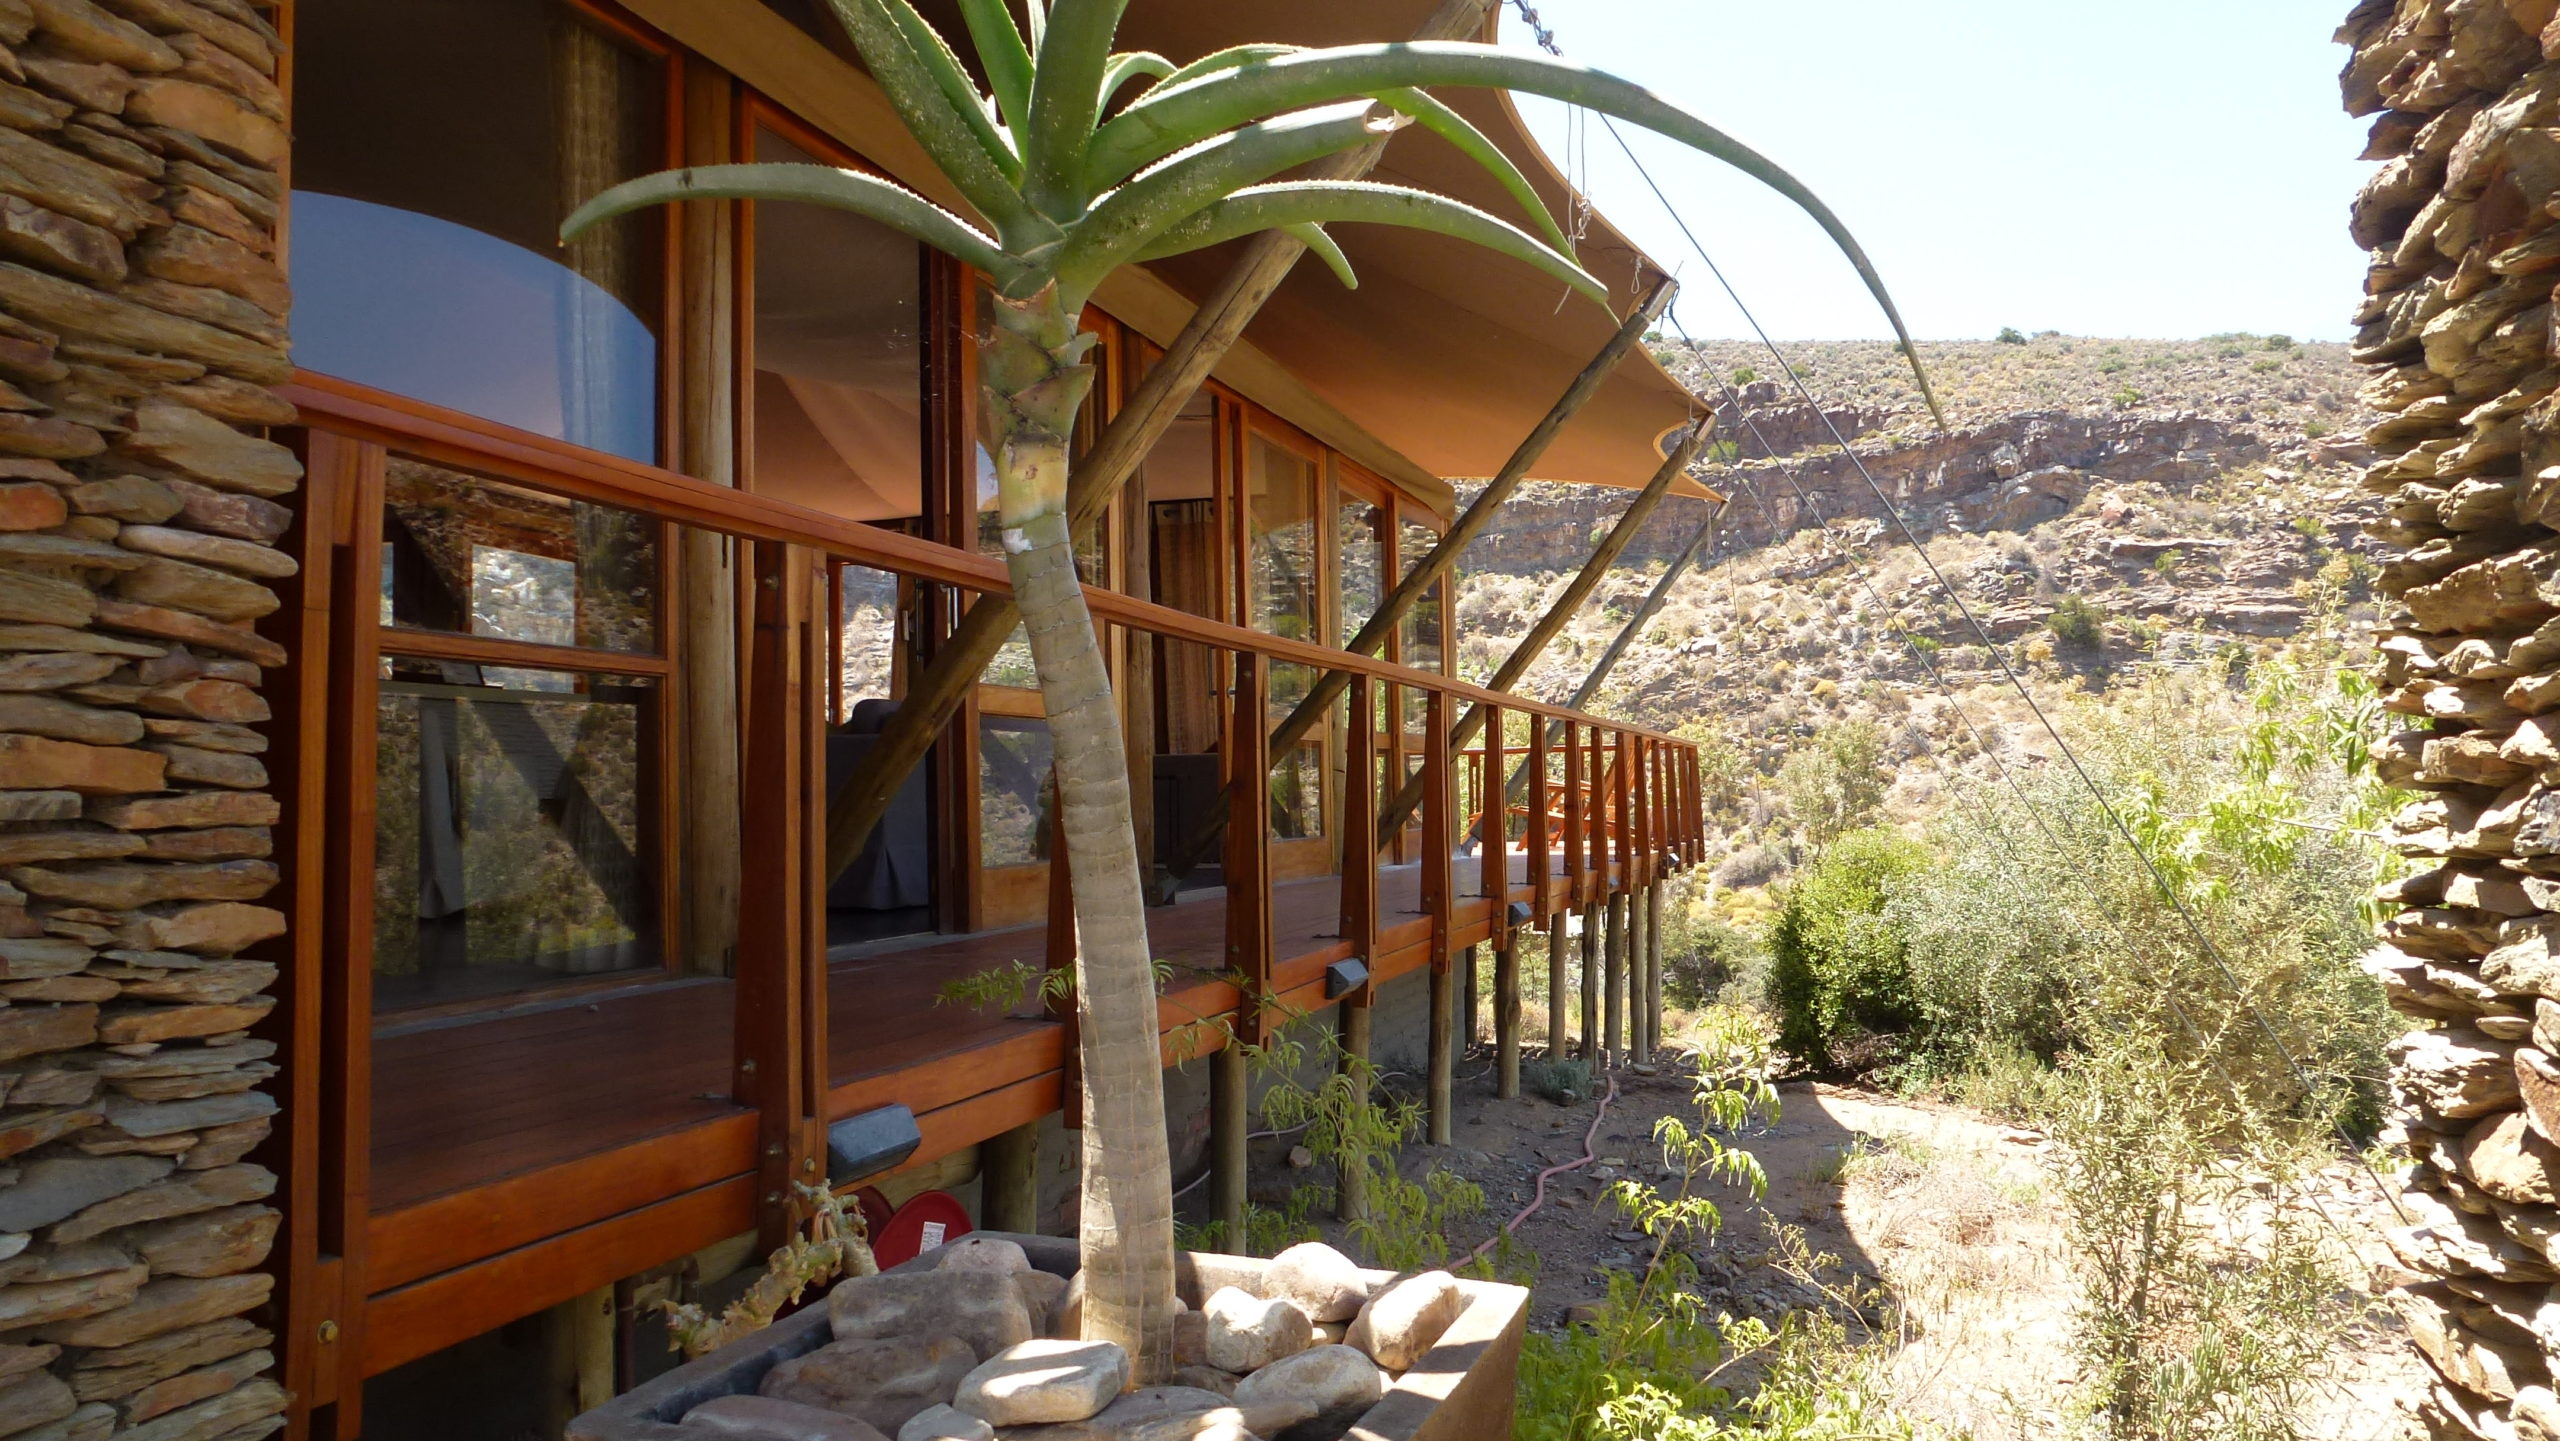 sanbona wildlife resort, safari, south africa, wilderness, tented lodge, jacuzzi, luxury travel